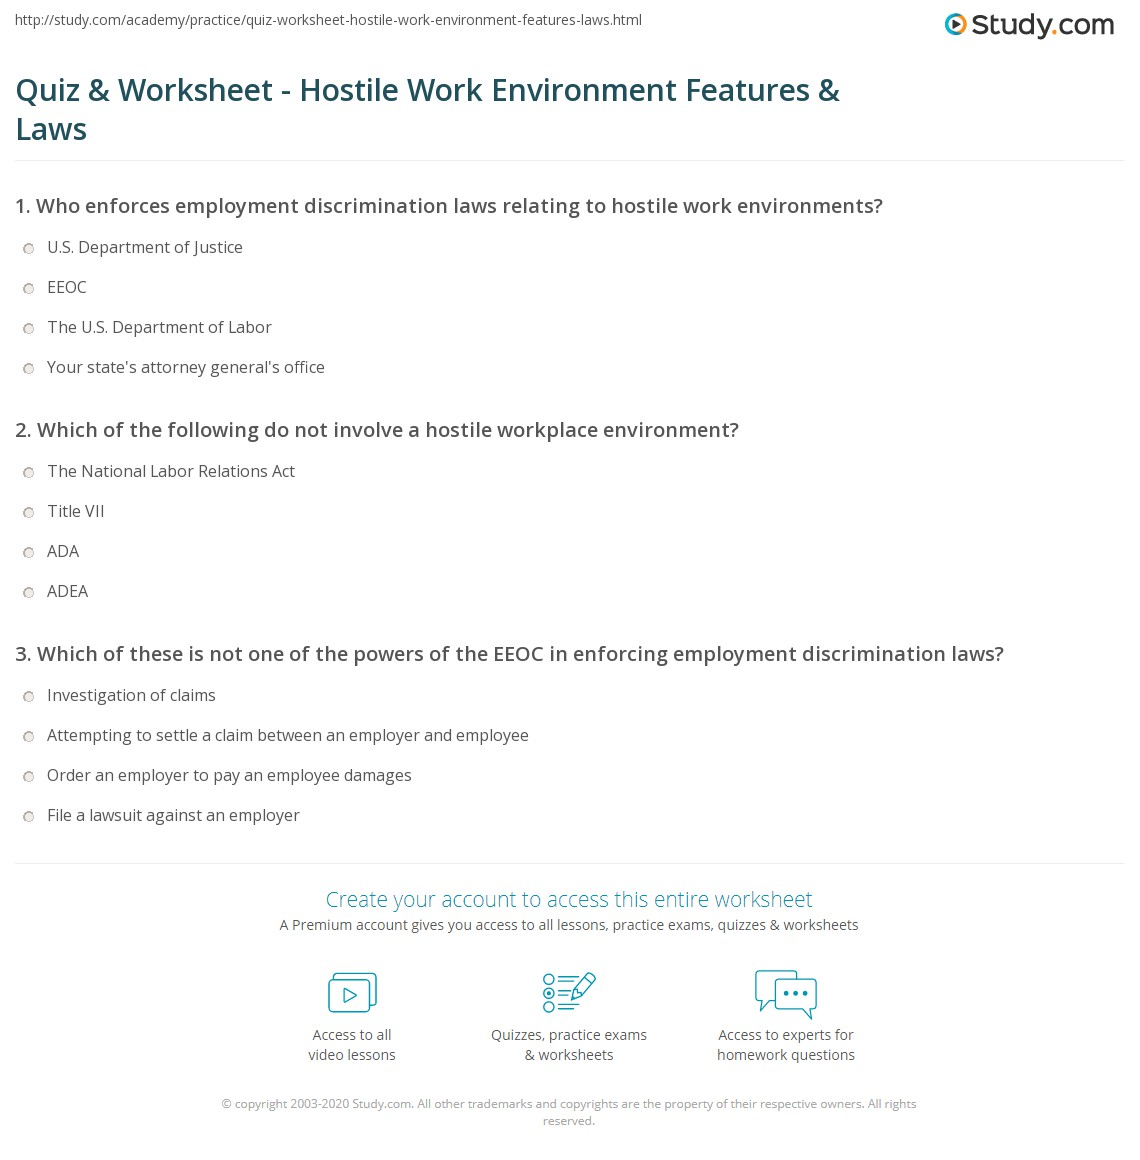 quiz & worksheet - hostile work environment features & laws | study